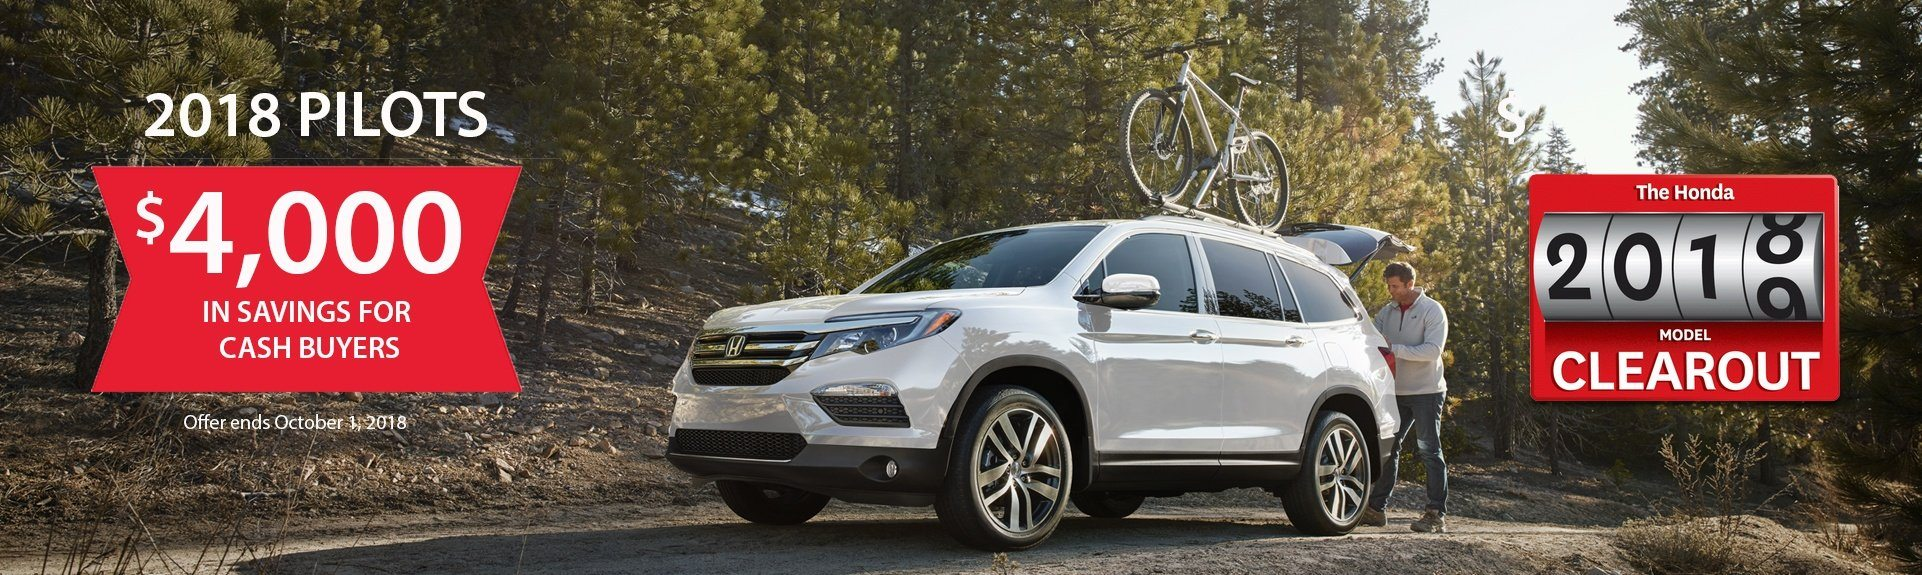 Honda Pilot Savings